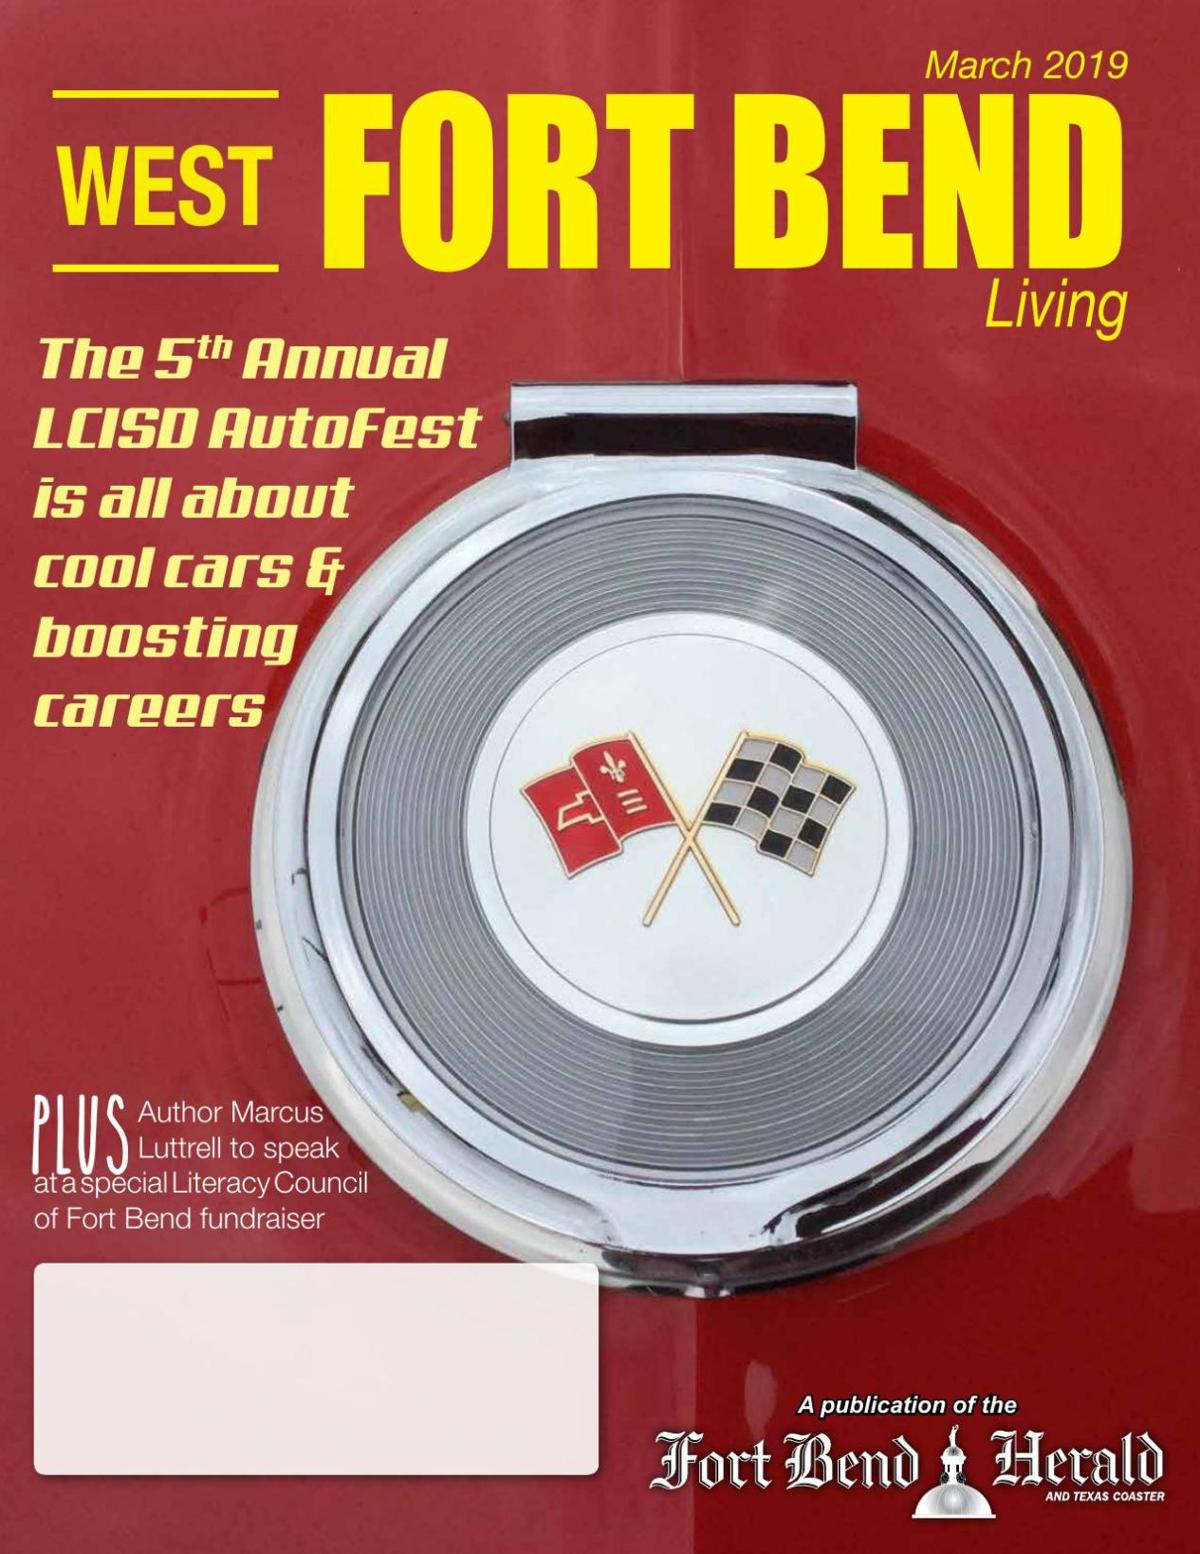 West Fort Bend Living: March 2019